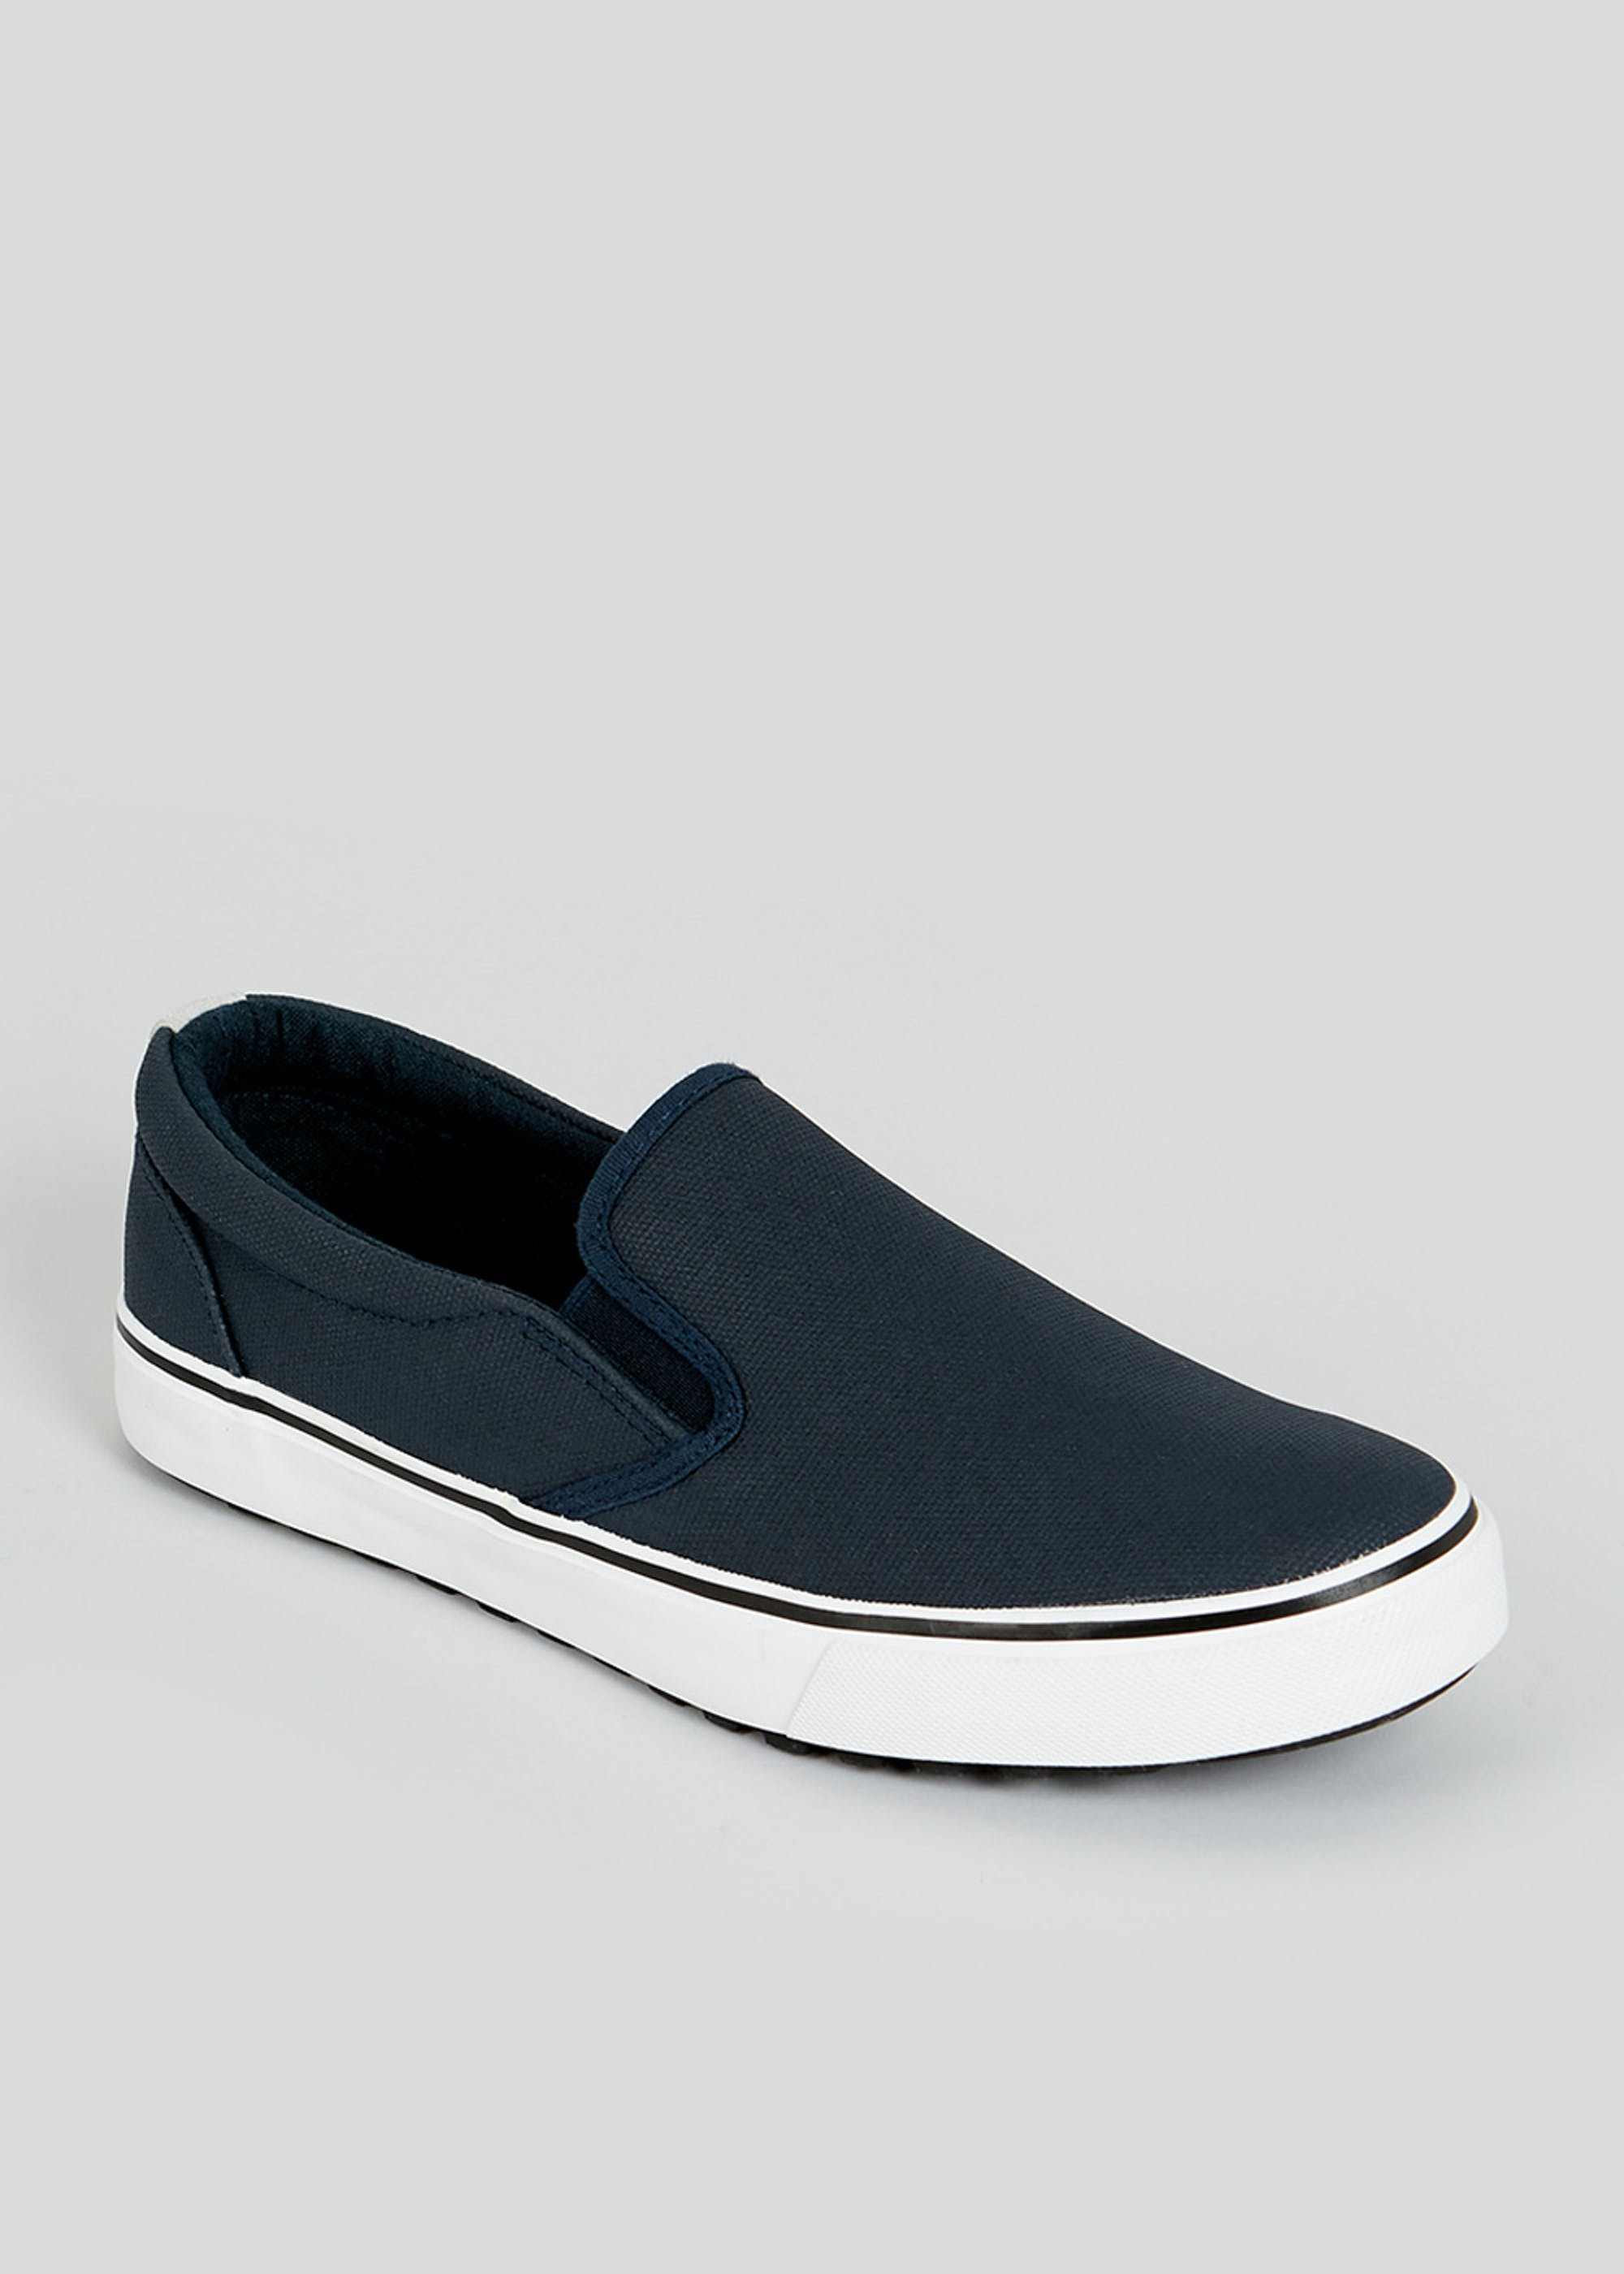 Navy Twin Gusset Slip On Shoes Navy rGQHYe